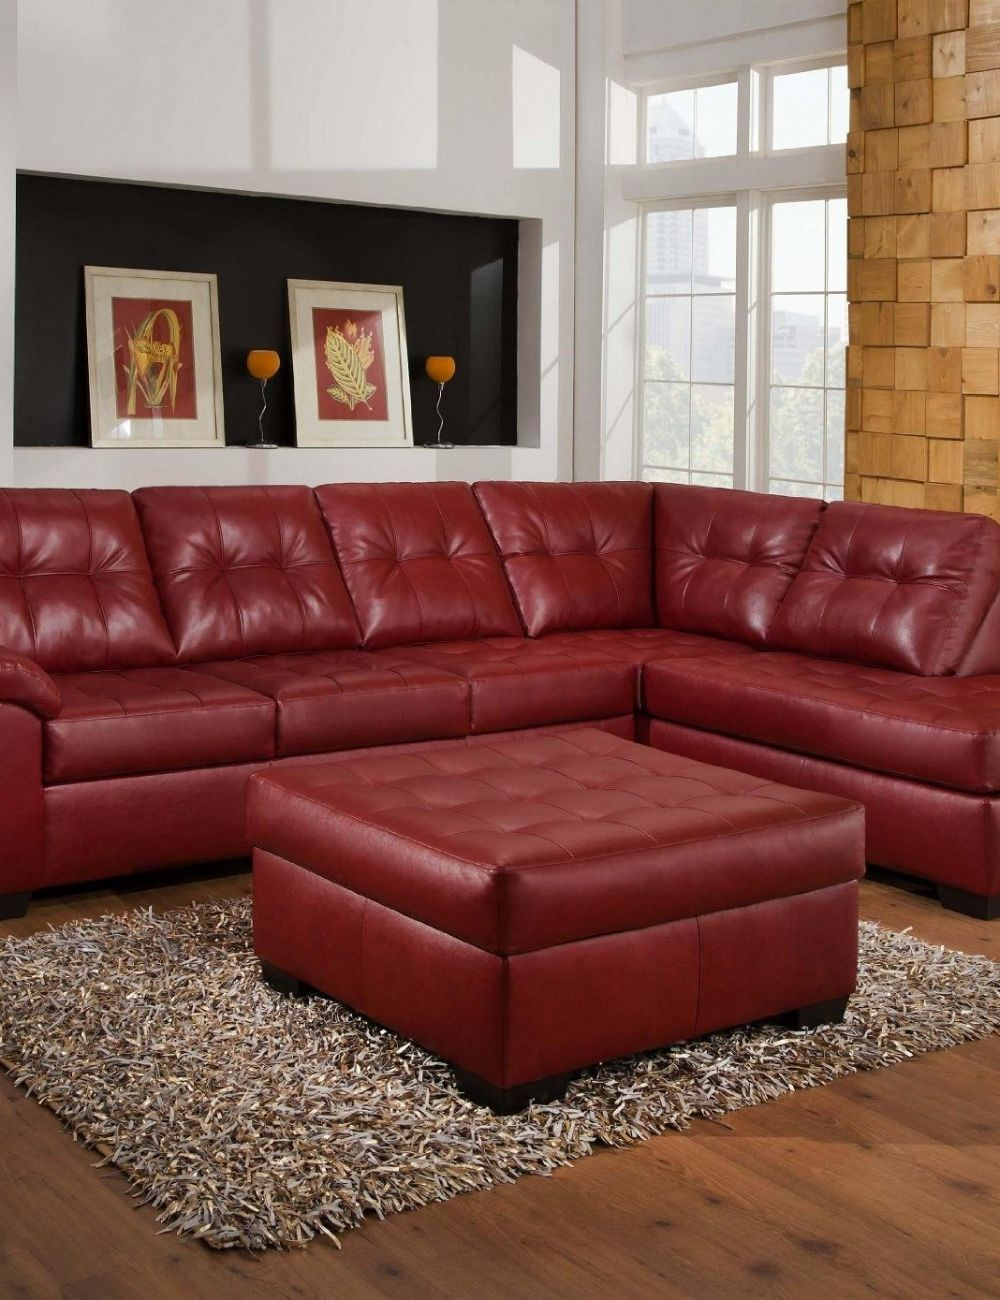 Red Leather Sectional Sofa With Ottoman Houston Apartment